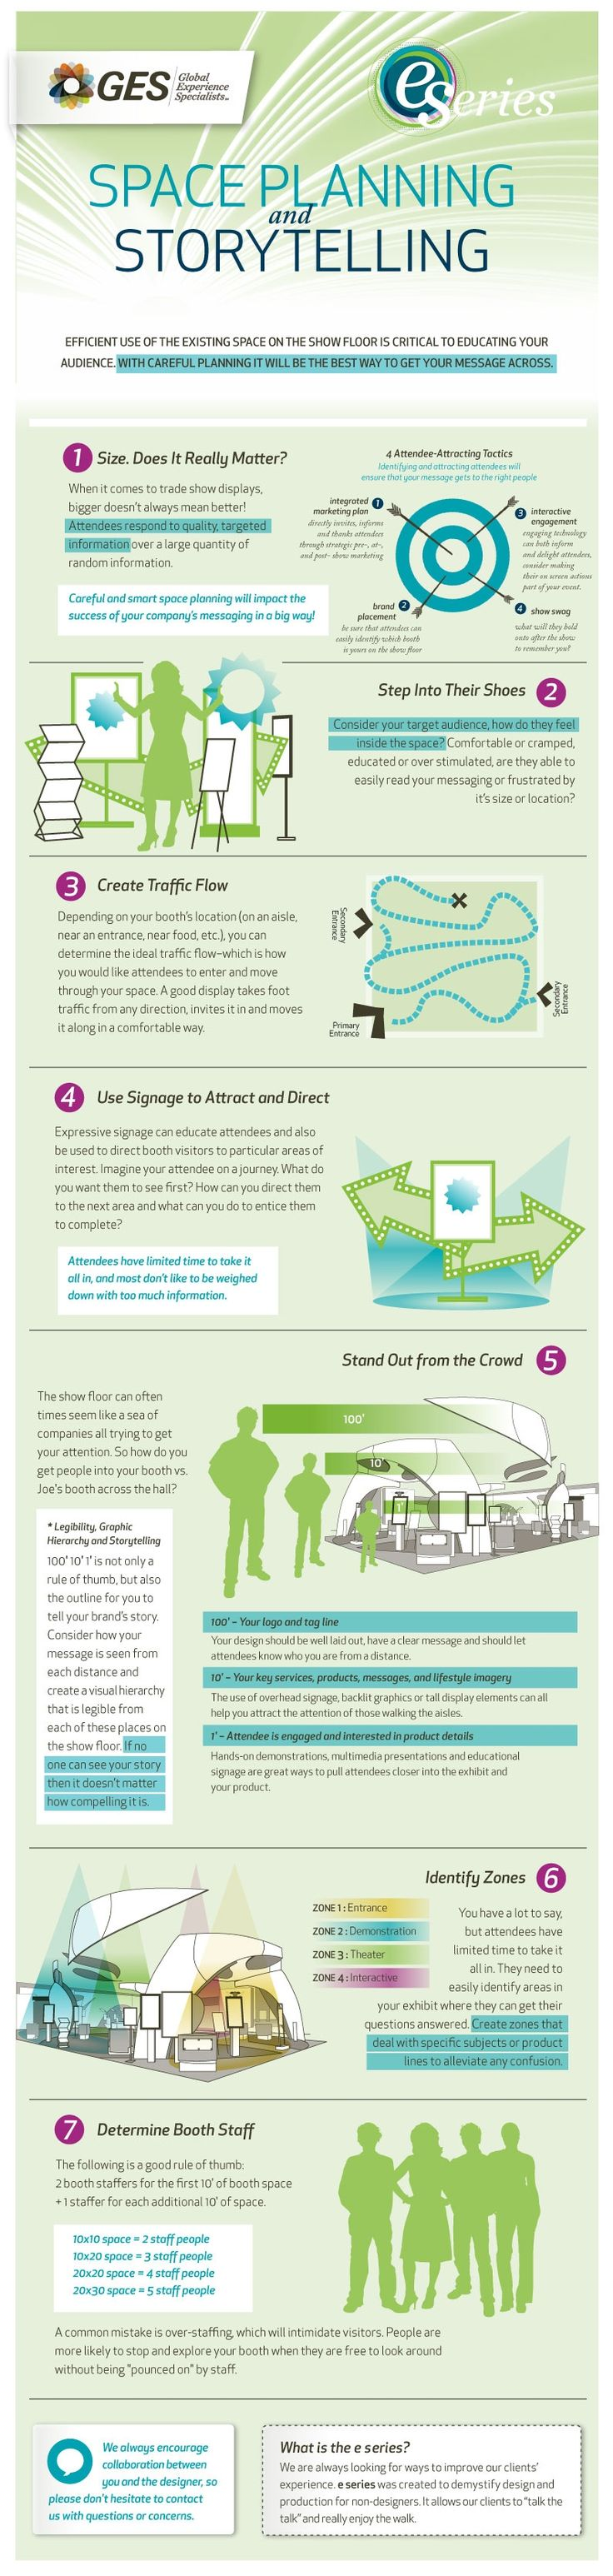 From GES: Space Planning and Story Telling.  Nice use the infographic to explain a tricky topic.